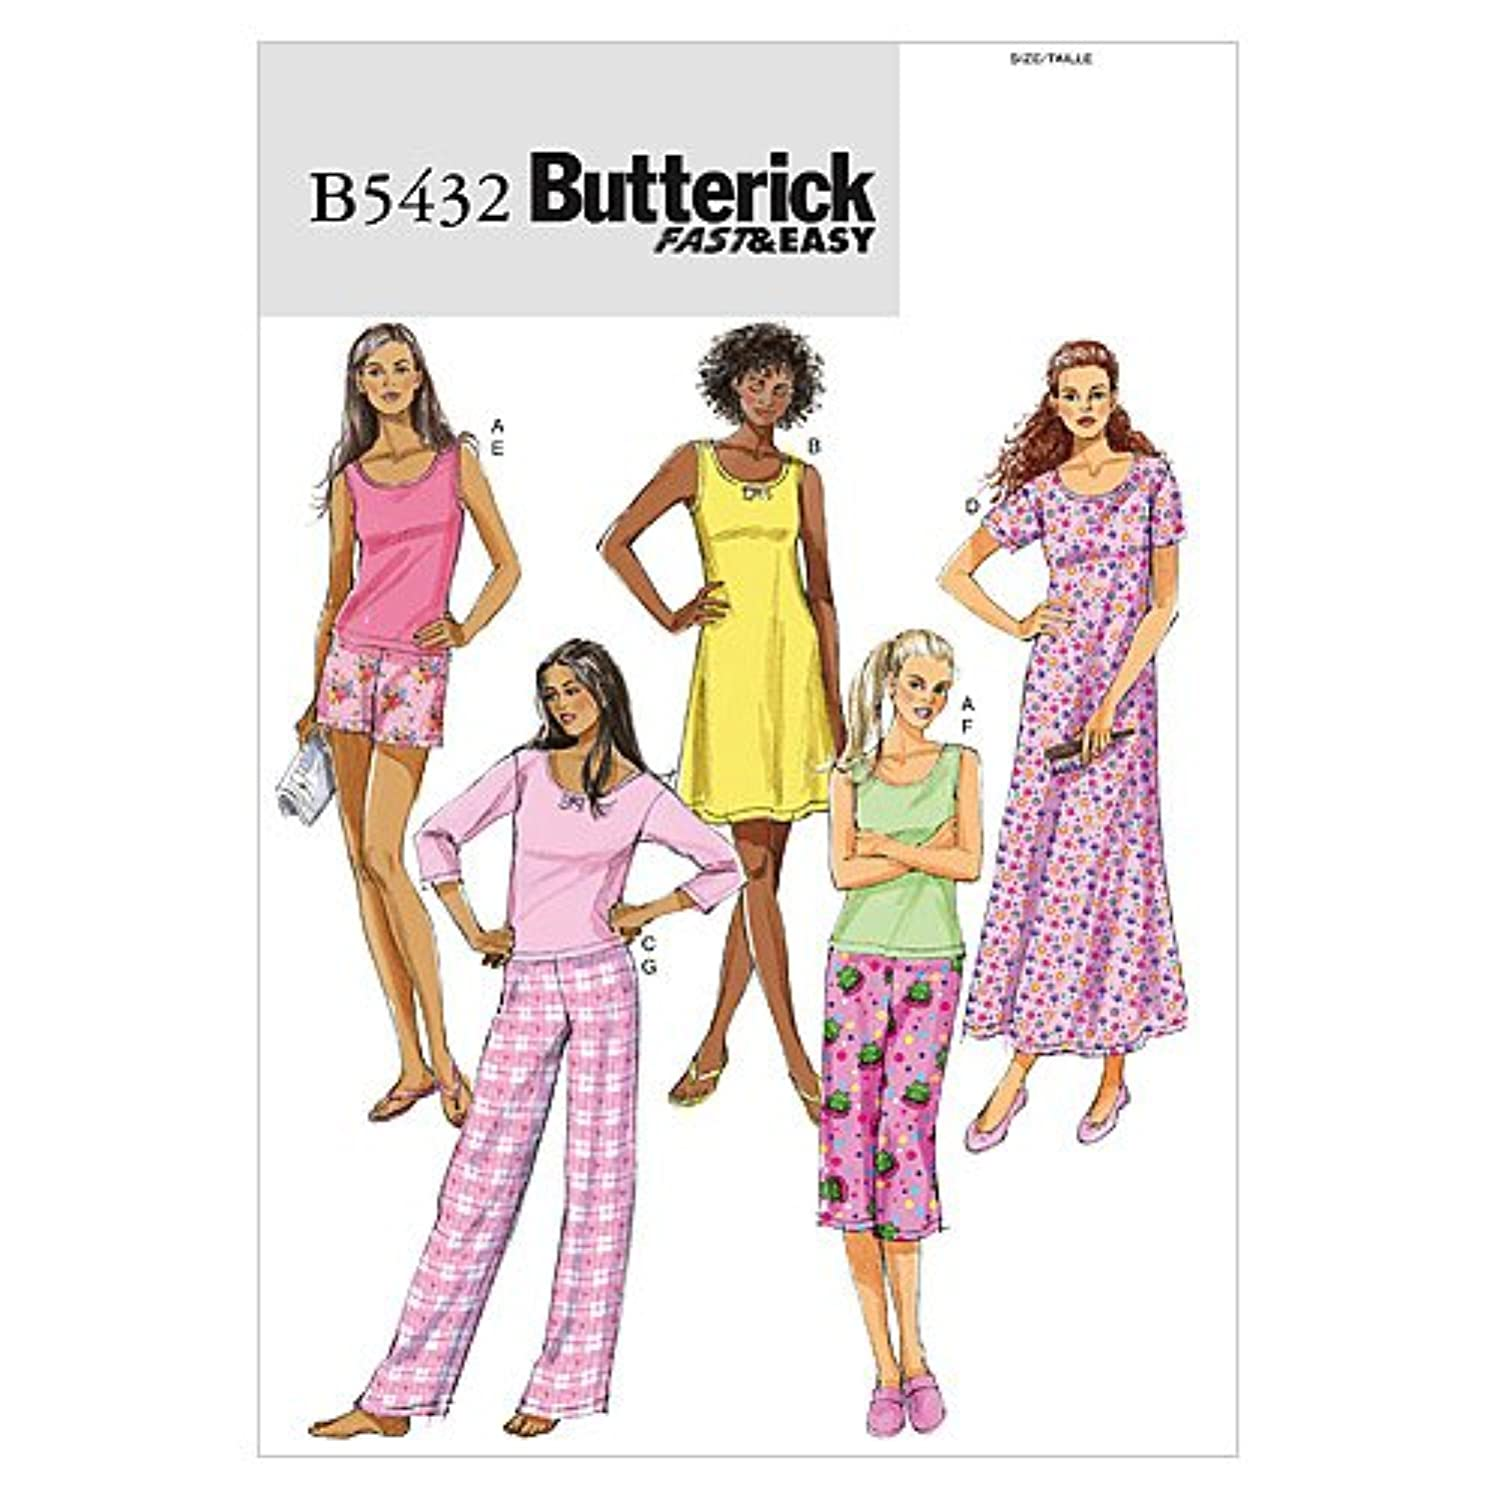 BUTTERICK PATTERNS B5432 Misses'/Misses' Petite Top, Gown, Shorts and Pants, Size Z (LRG-XLG)